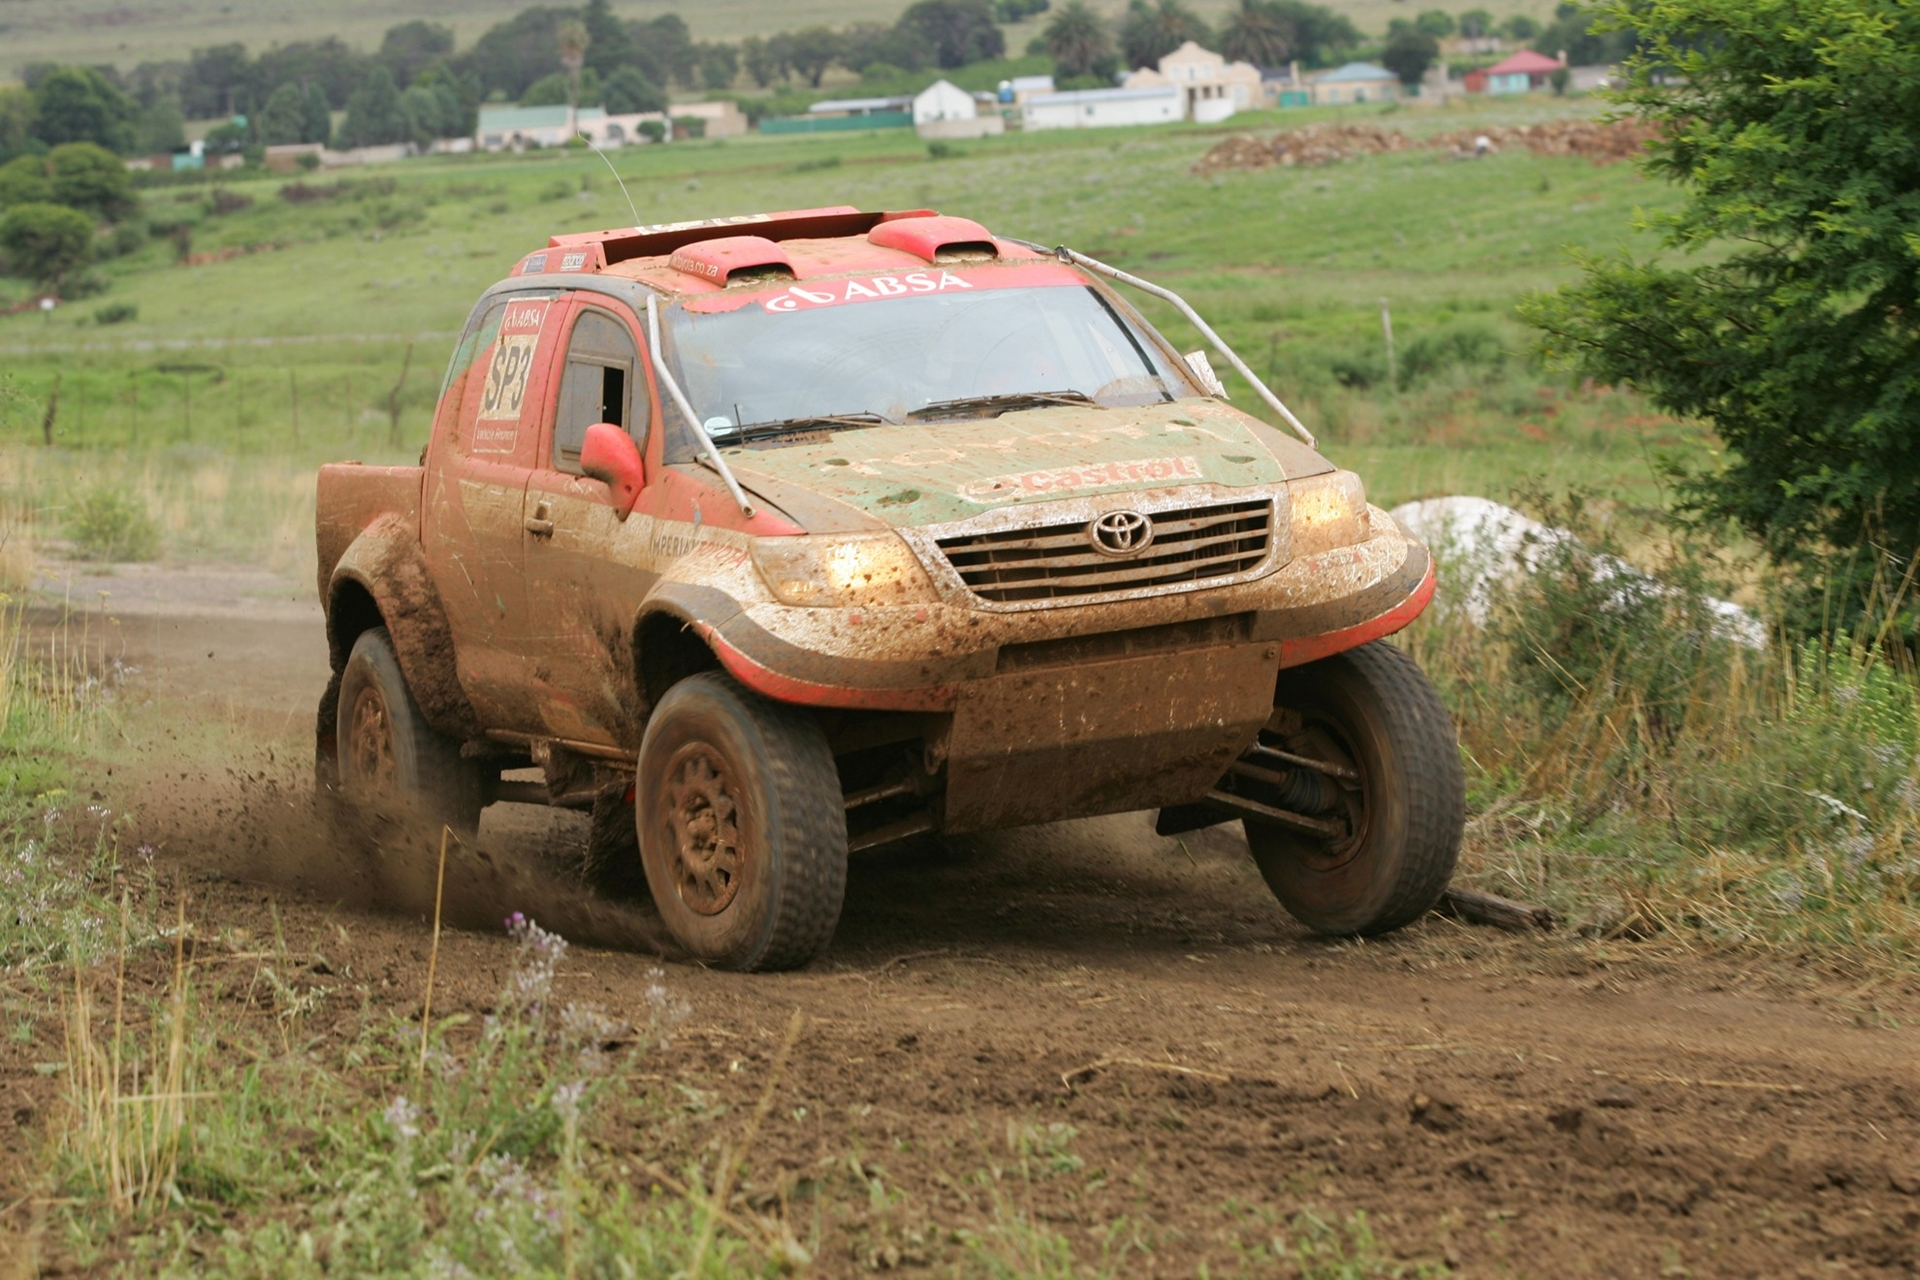 Racing Toyota Hilux